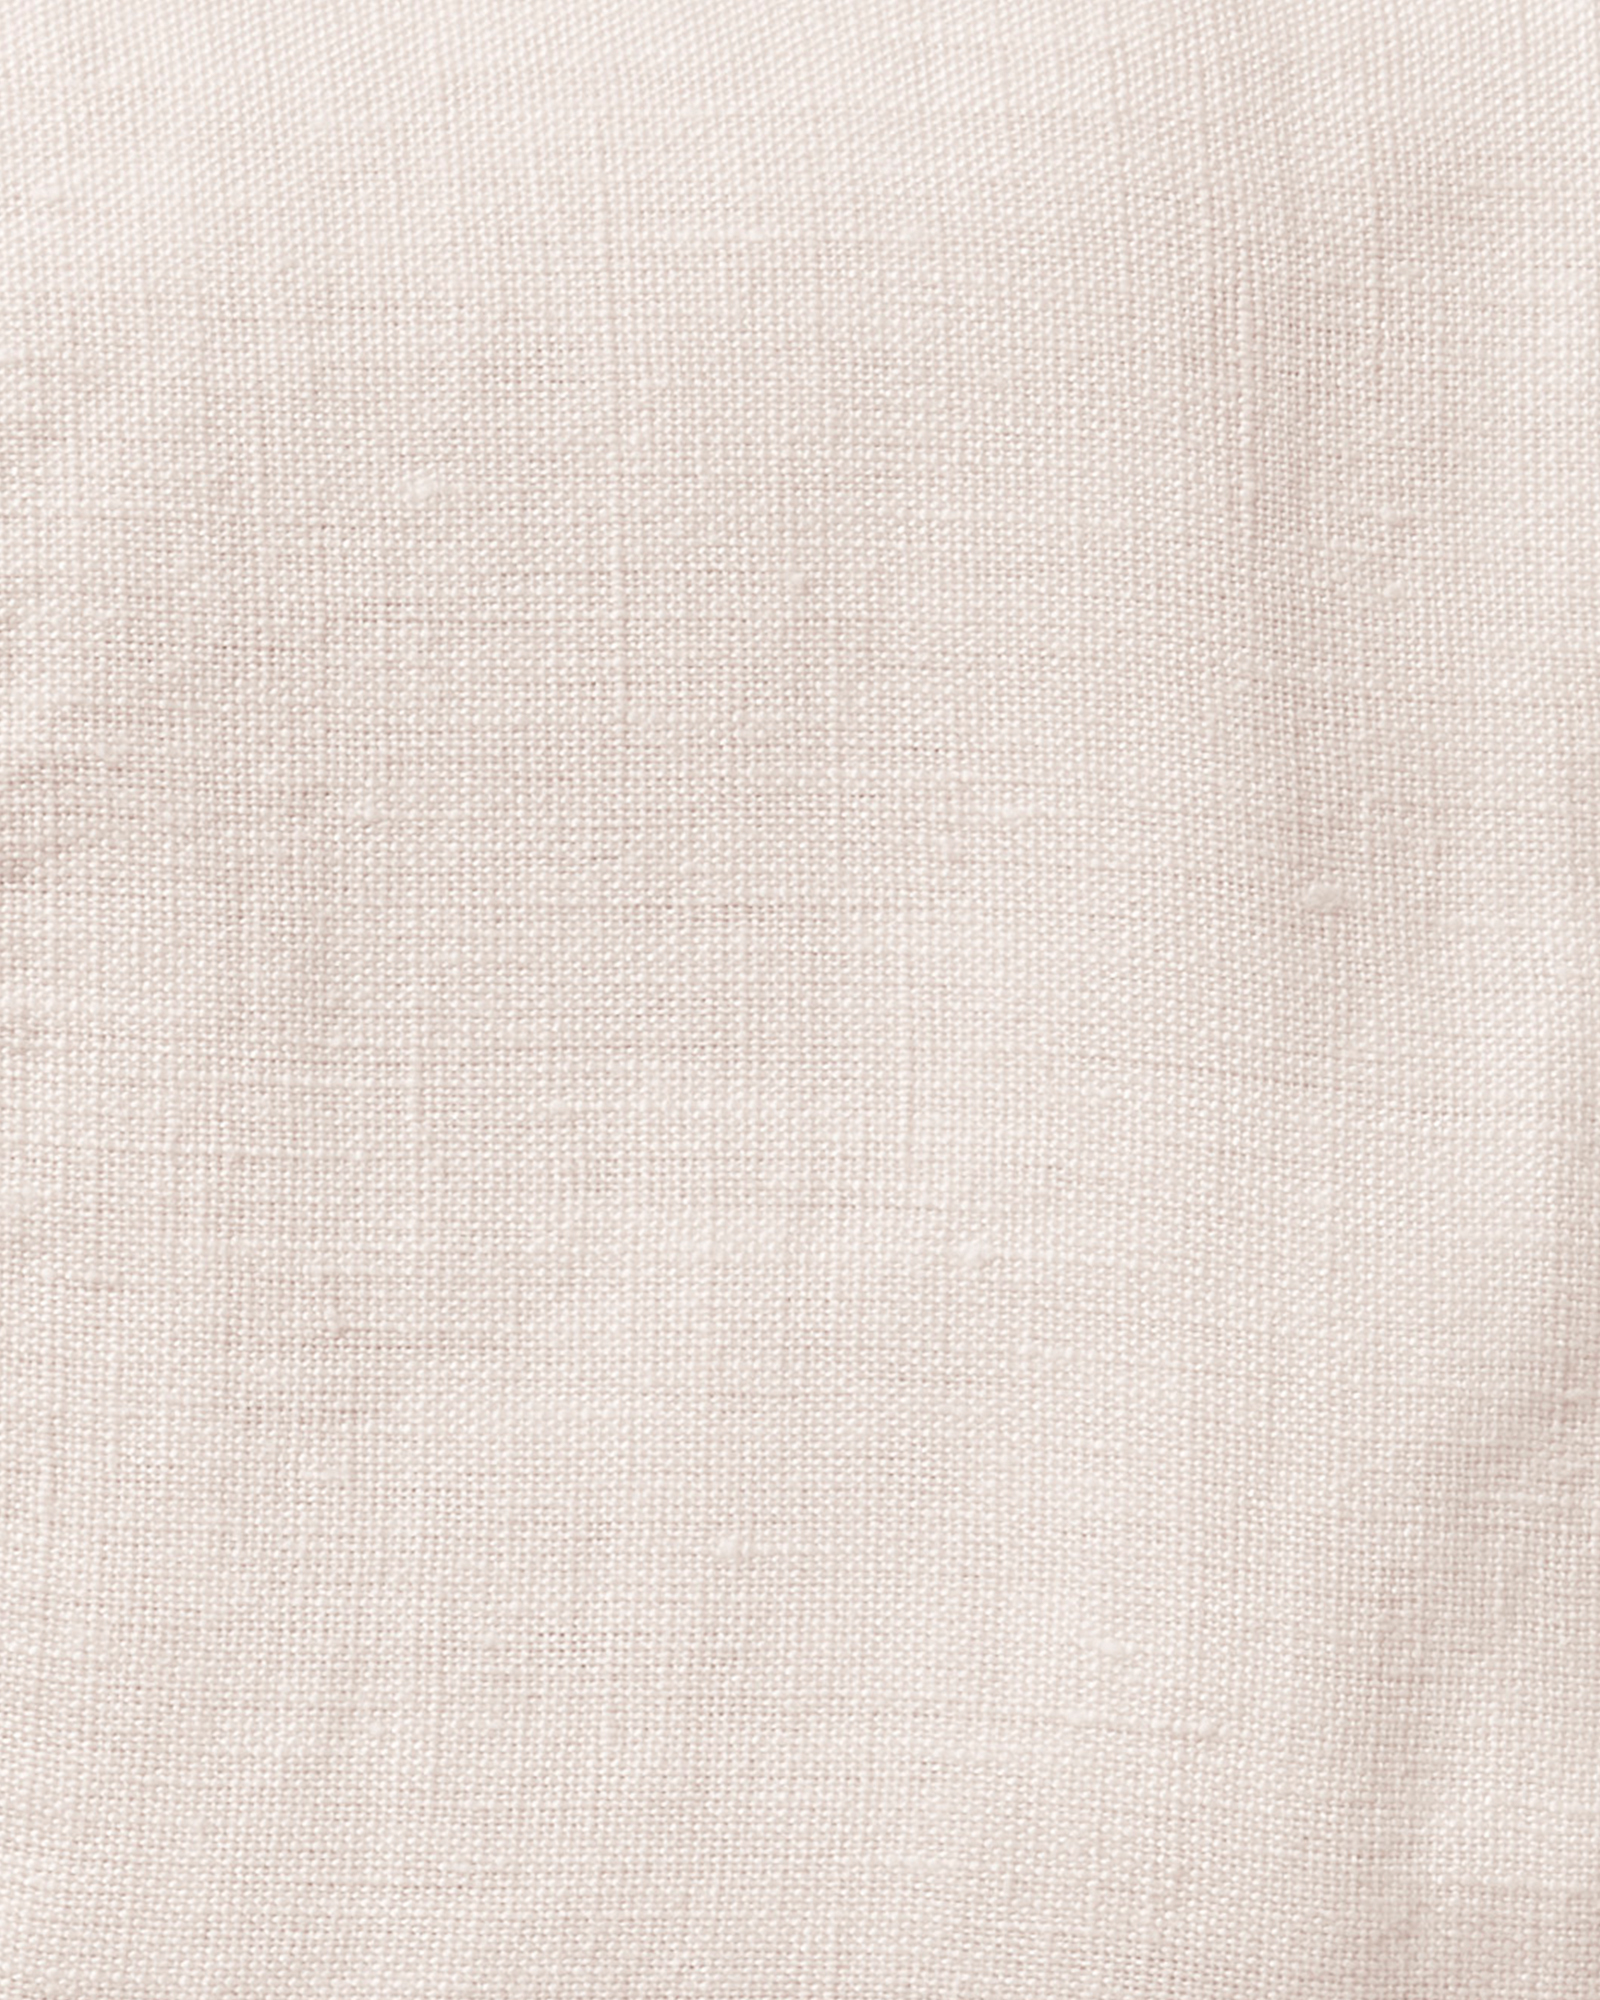 Cavallo Linen Bedding Swatch, Pink Sand Chambray